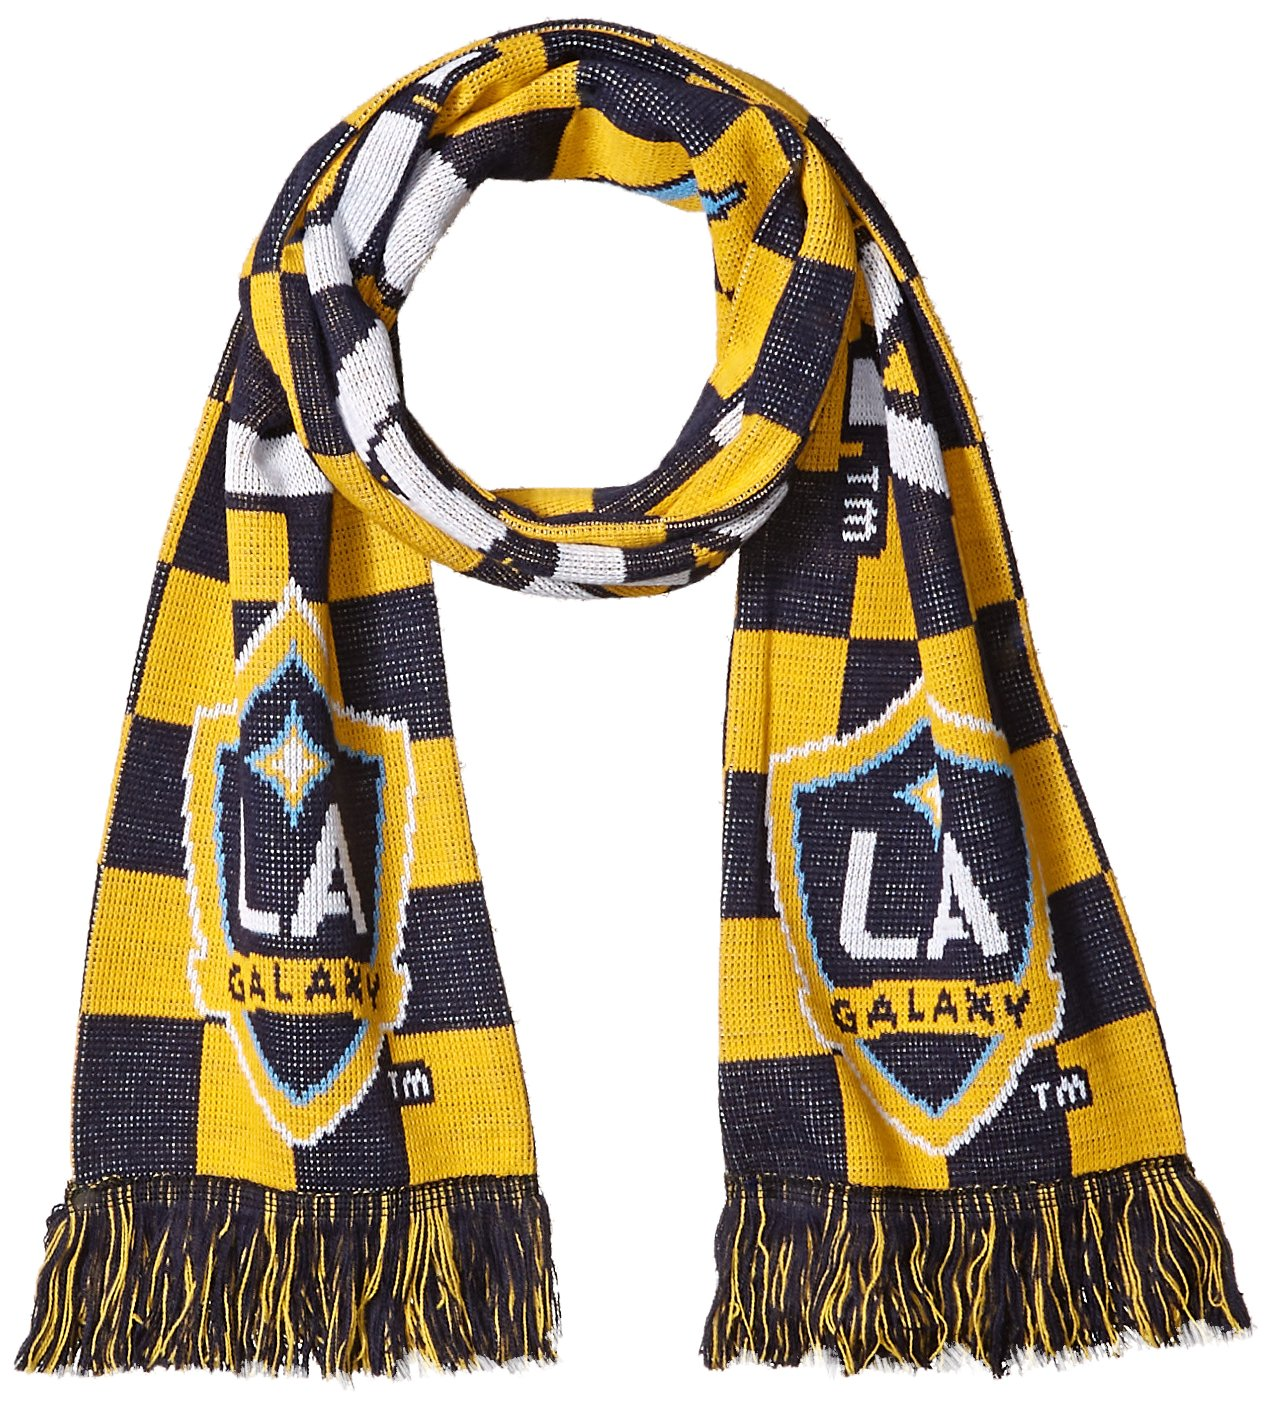 Ruffneck Scarves LA Galaxy Official MLS Scarf 9 Designs